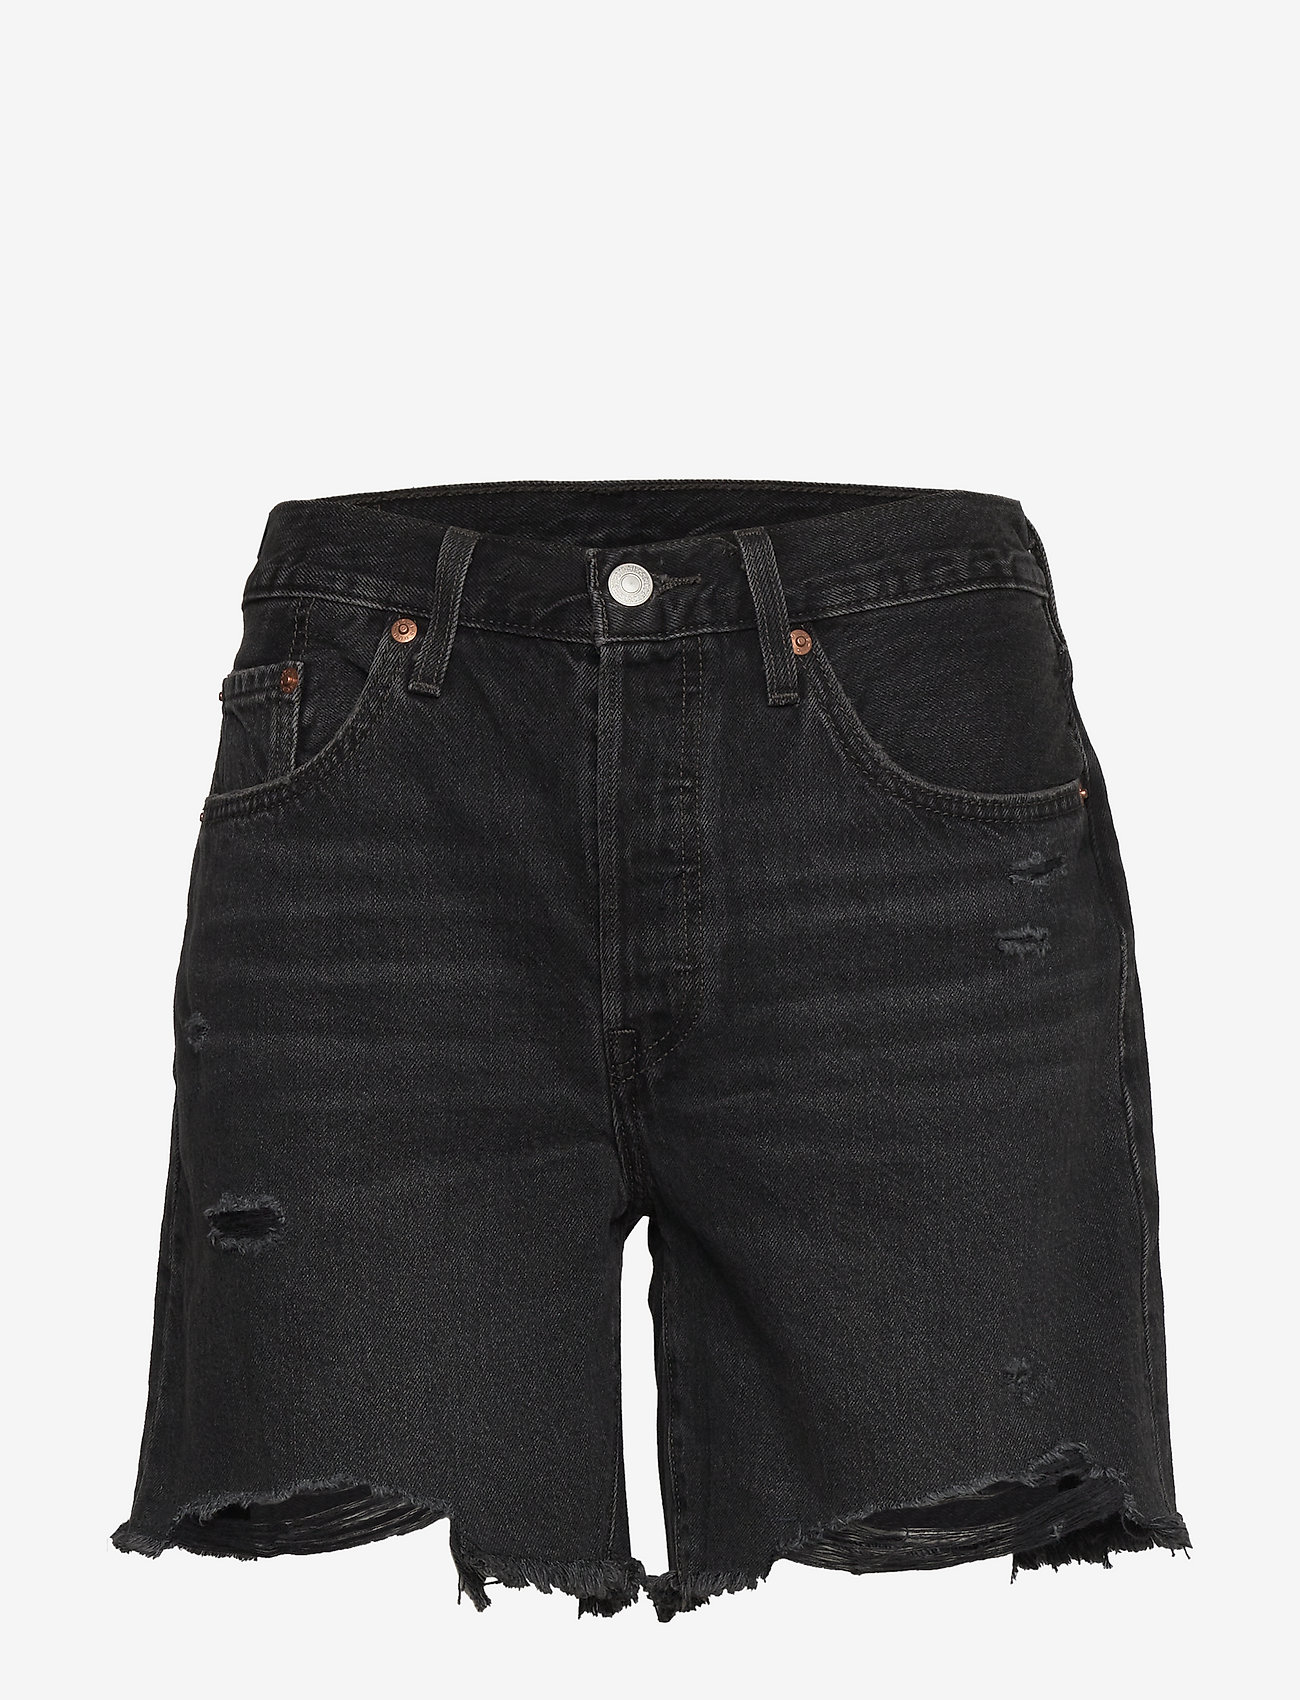 LEVI´S Women - 501 MID THIGH SHORT BEES KNEES - denimshorts - blacks - 0